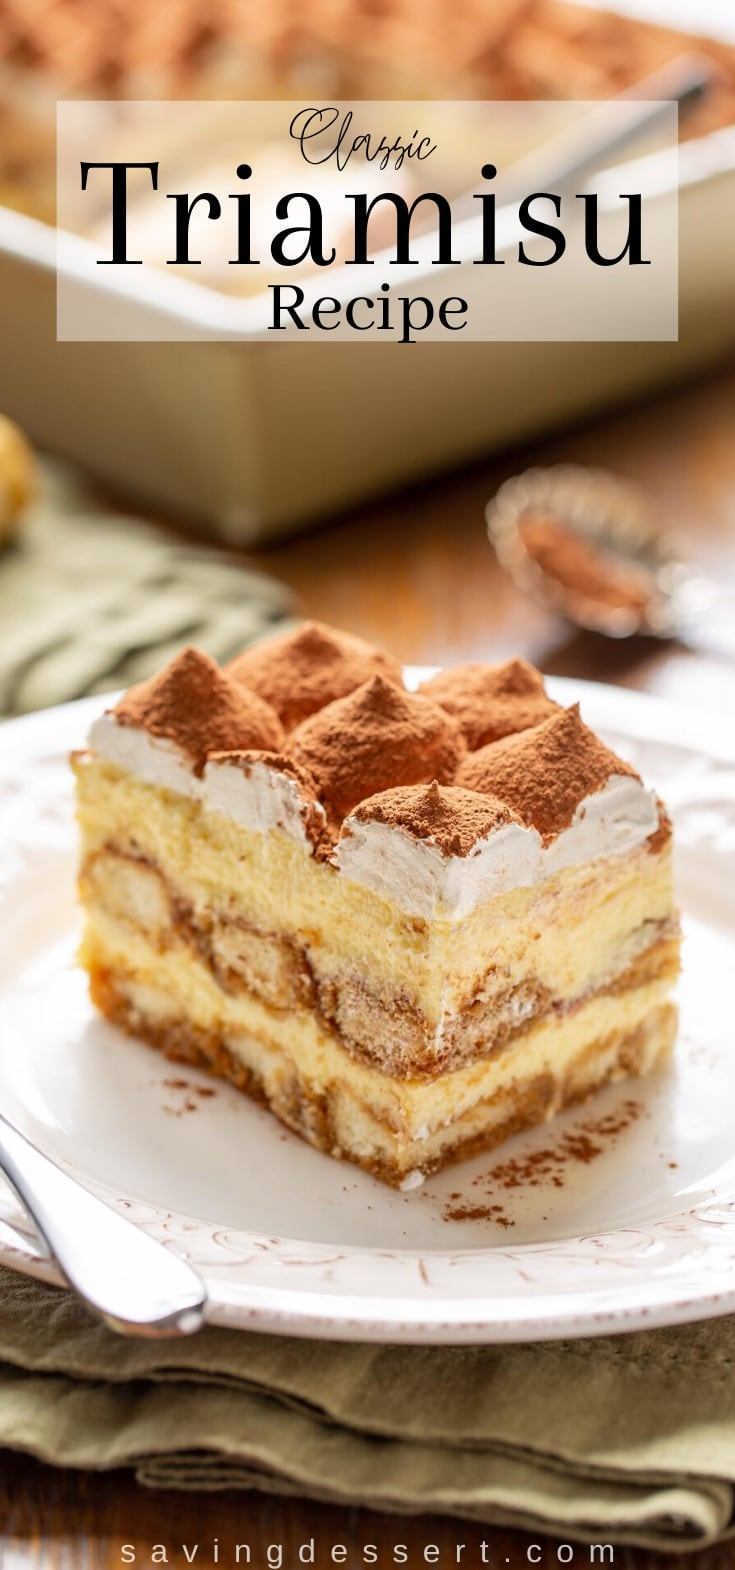 A slice of classic Tiramisu with mounds of whipped cream on top dusted with cocoa